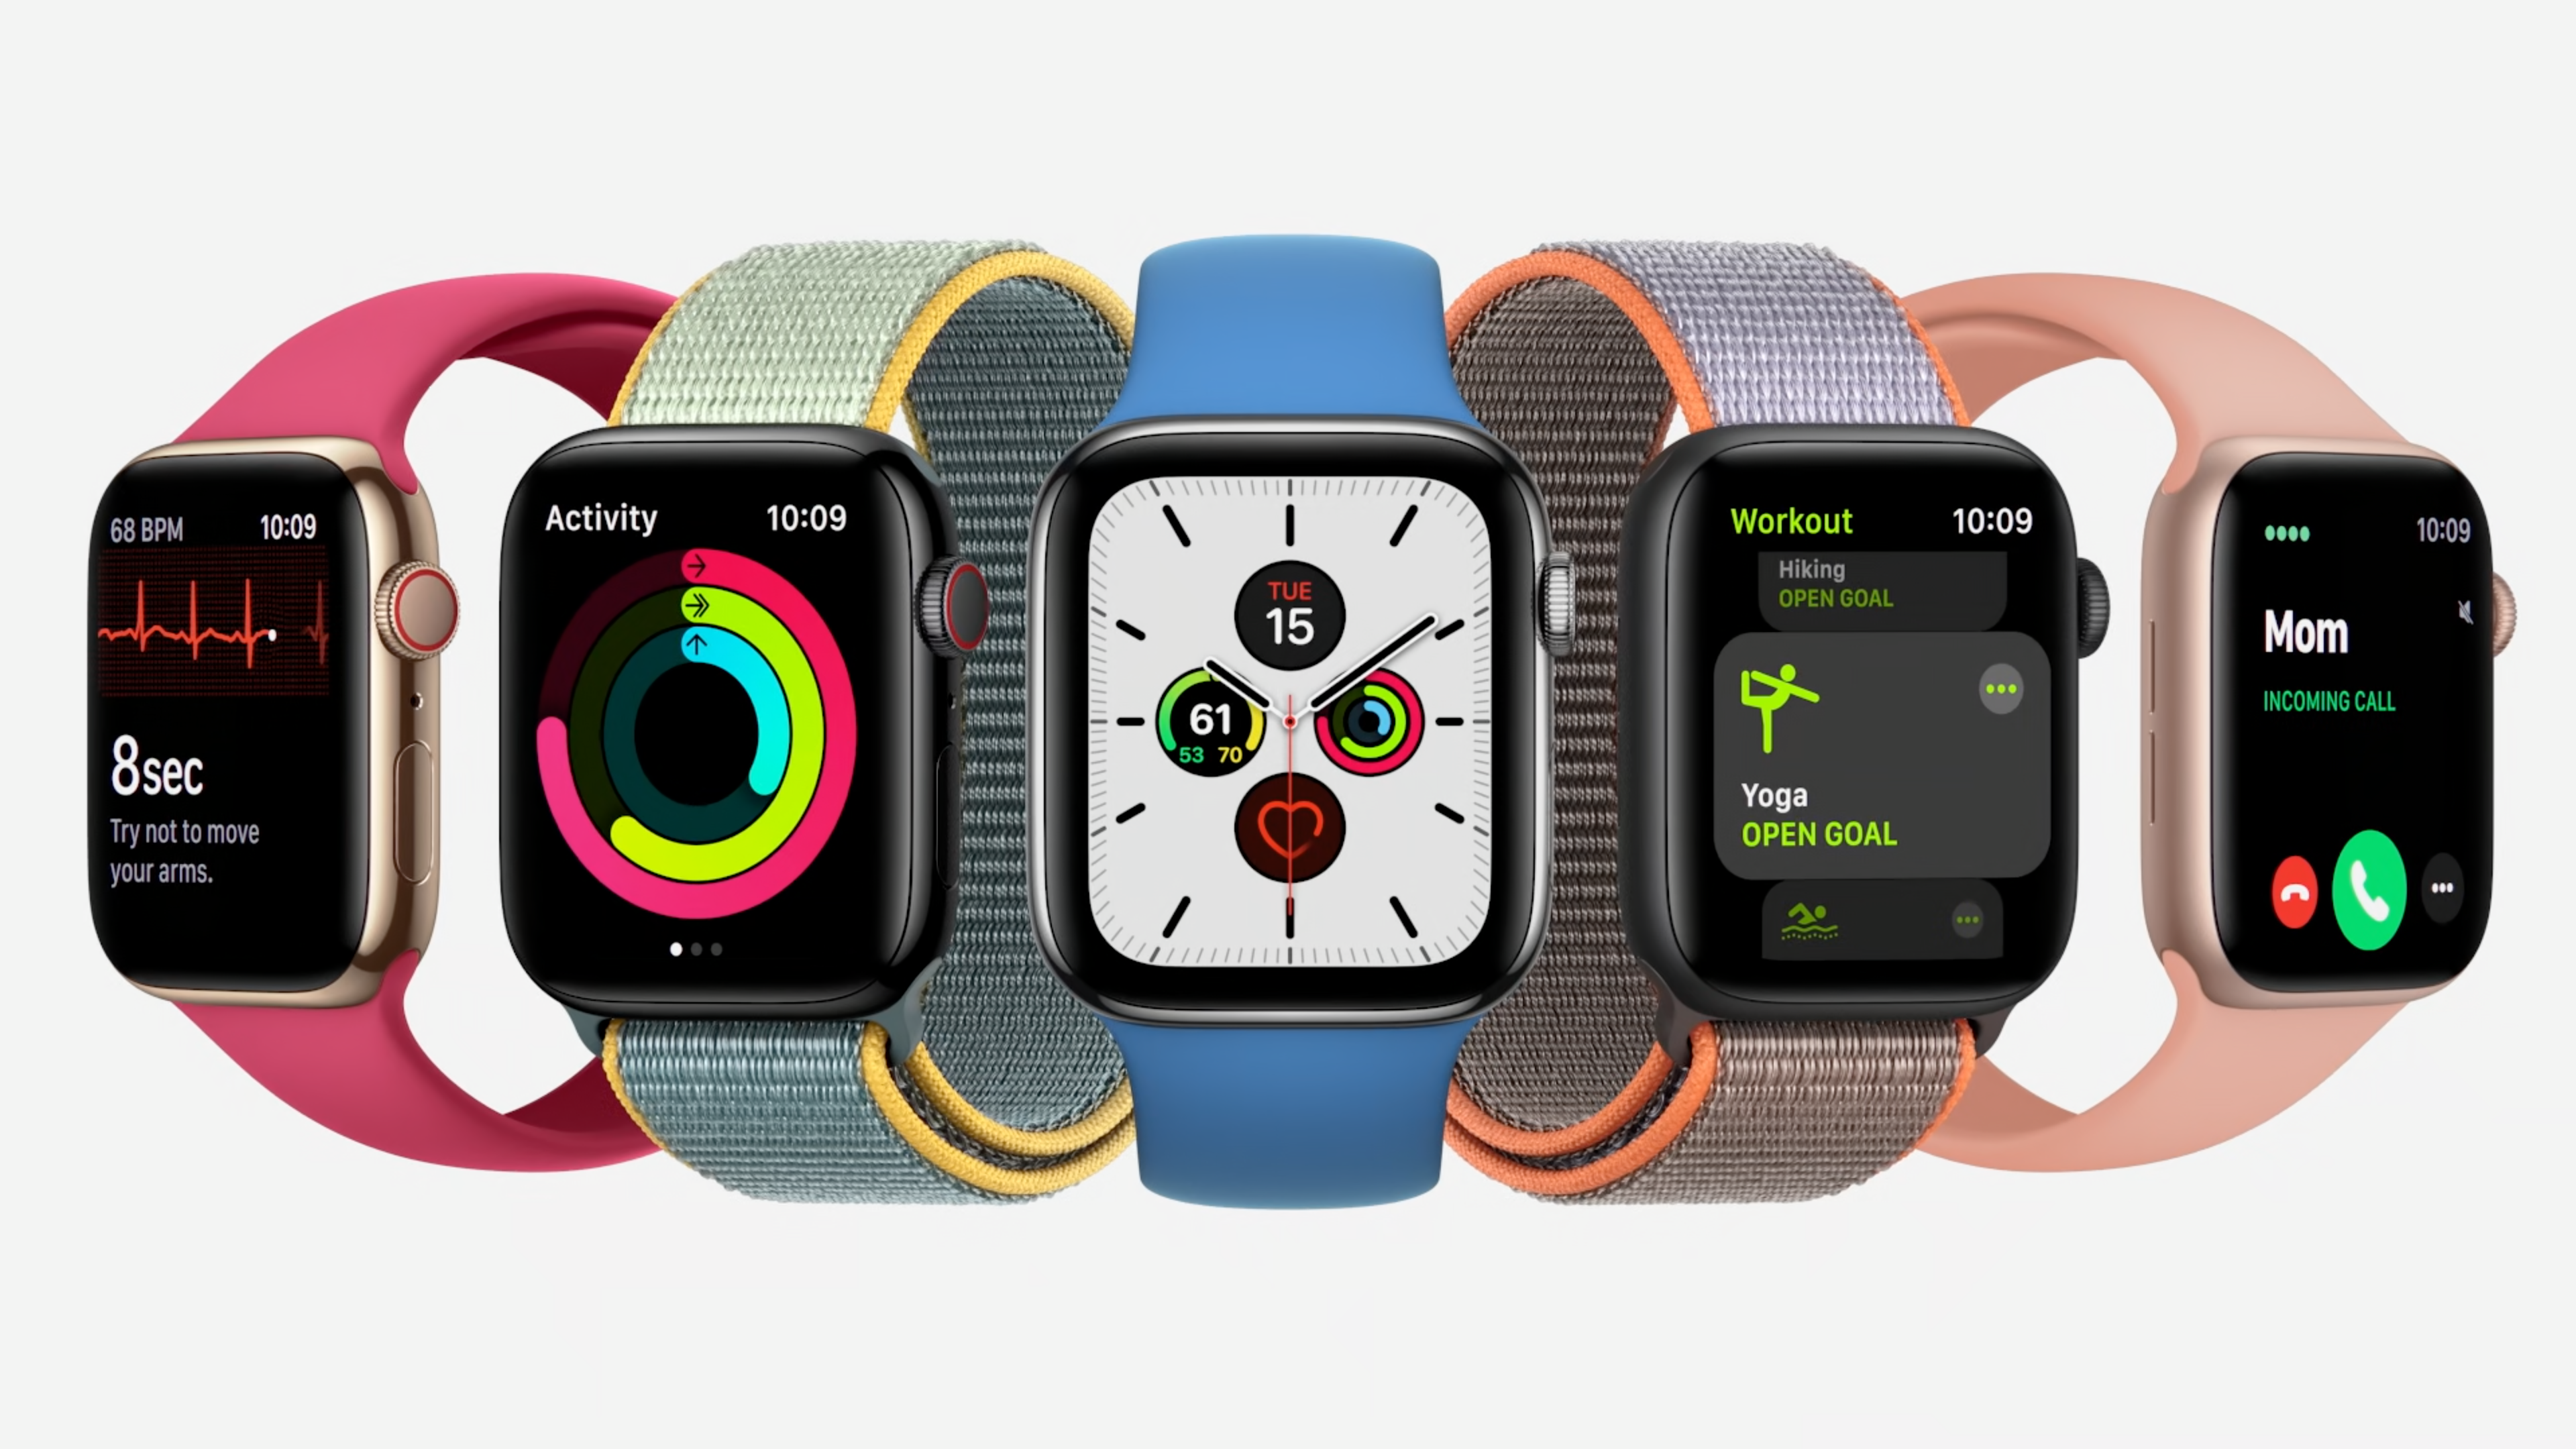 011-apple-event-9-15-2020-apple-watch-series-6.png